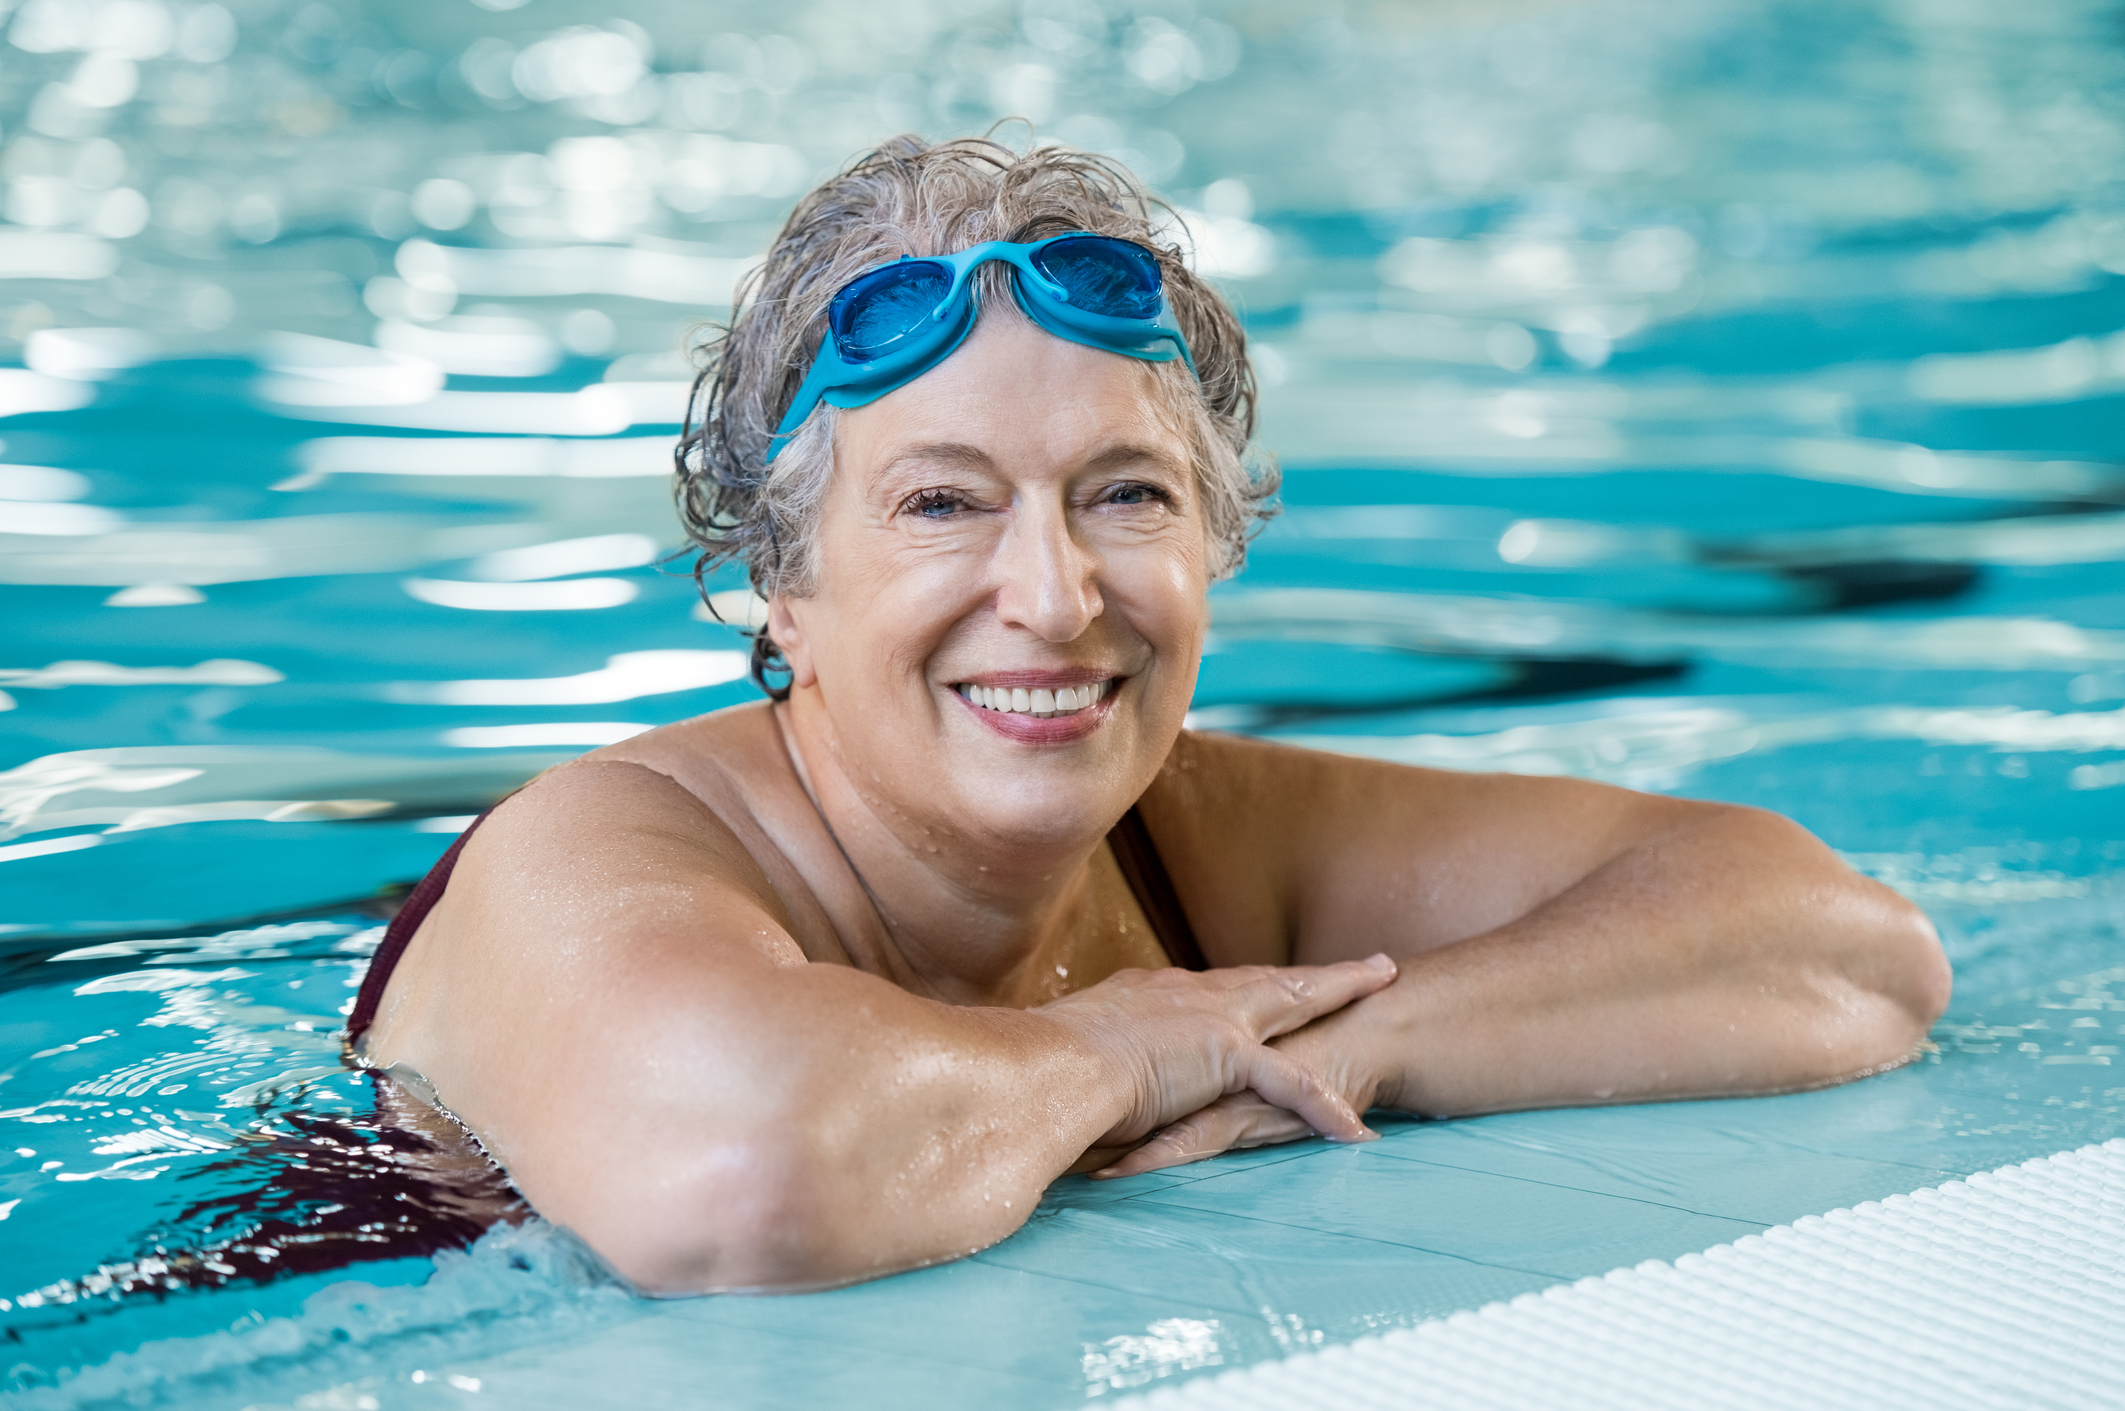 older adult activities, senior swimming, senior actiivities